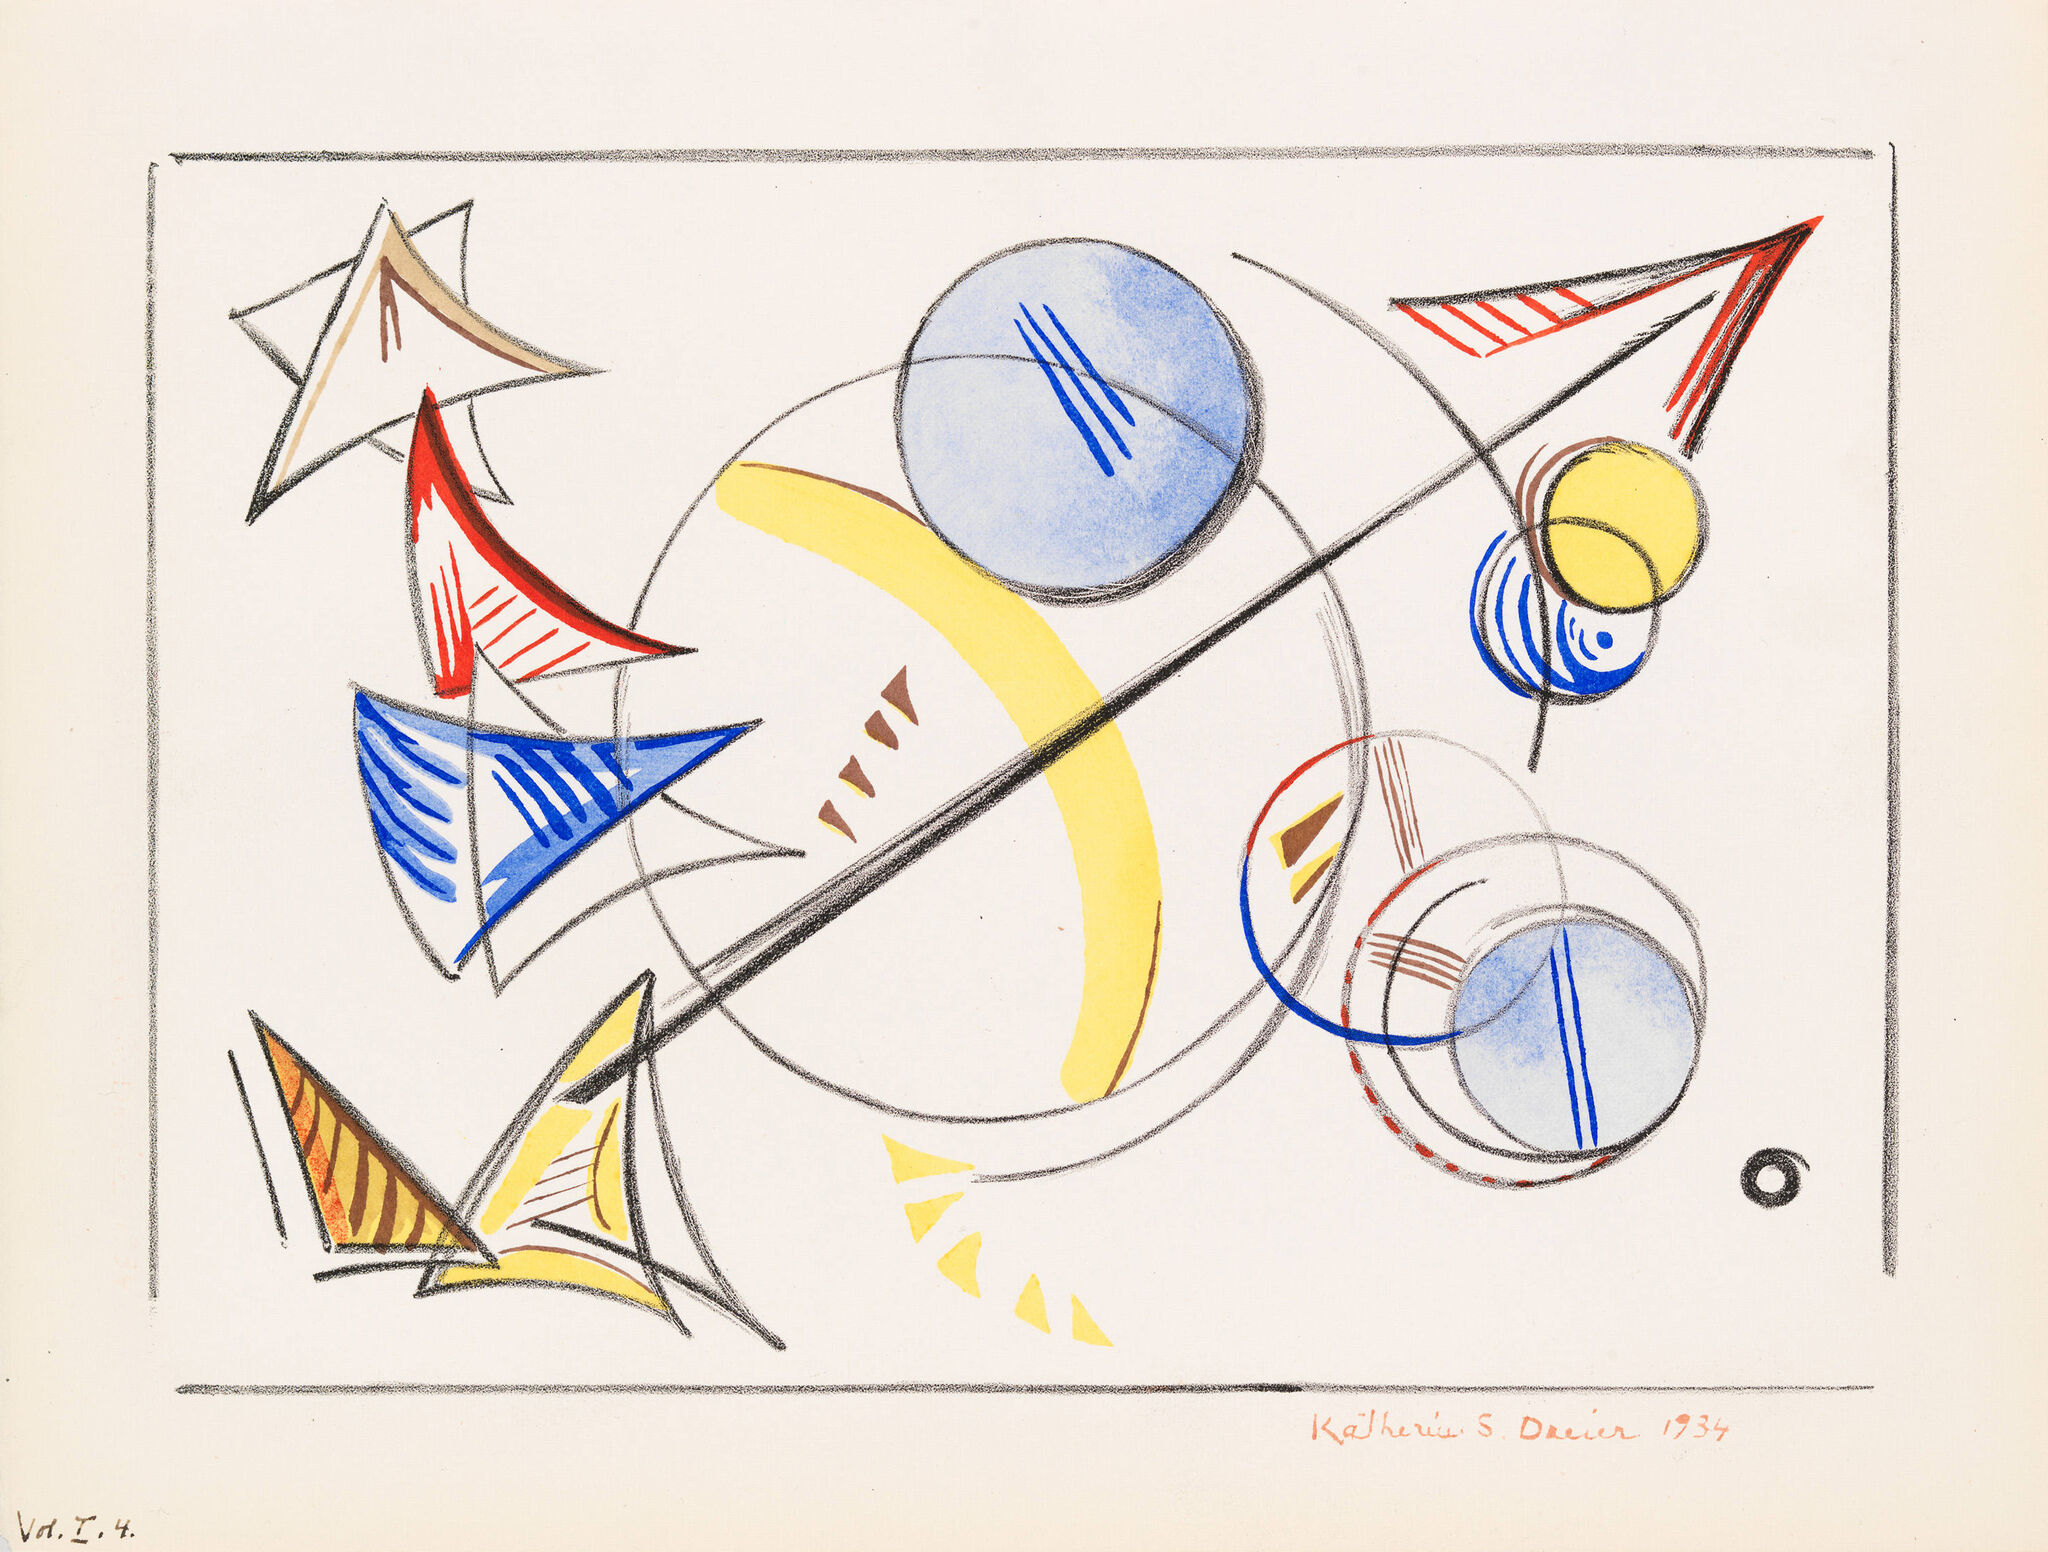 Colorful line drawing of overlapping circles and triangles.